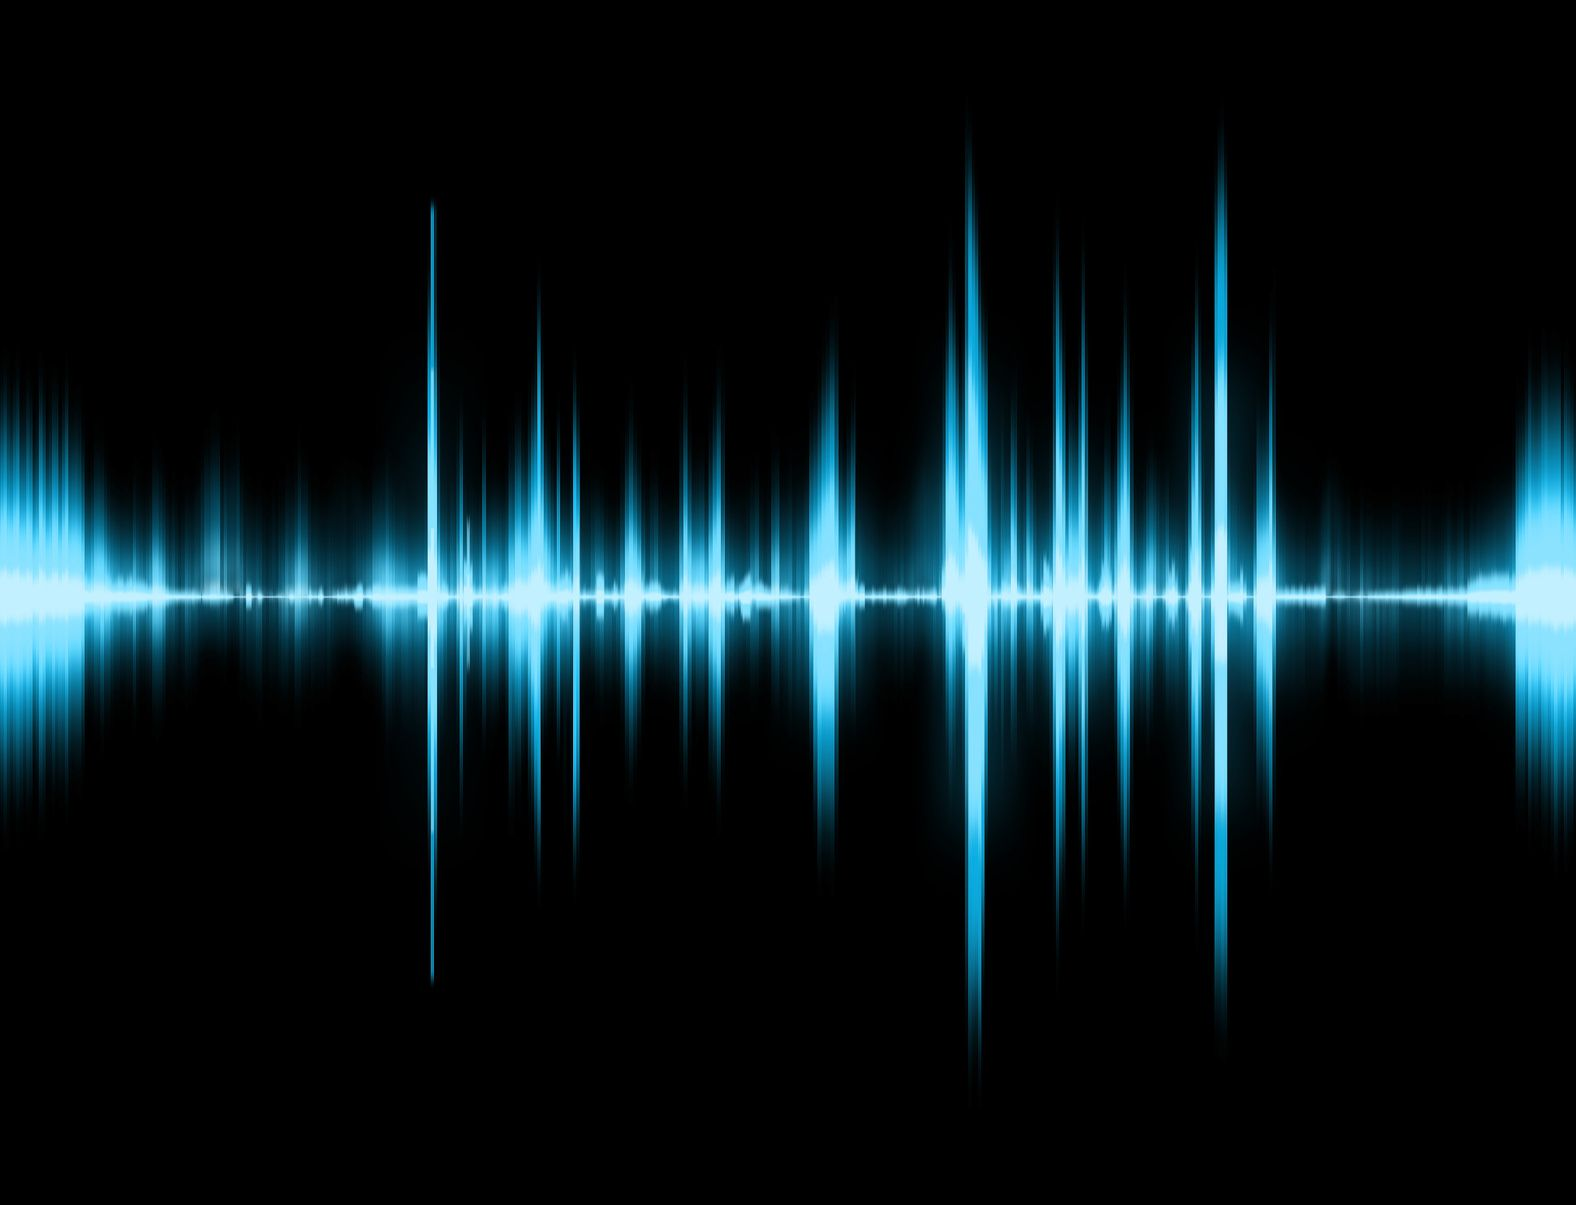 Sound Waves Music Love This Music Sound Waves Music Images